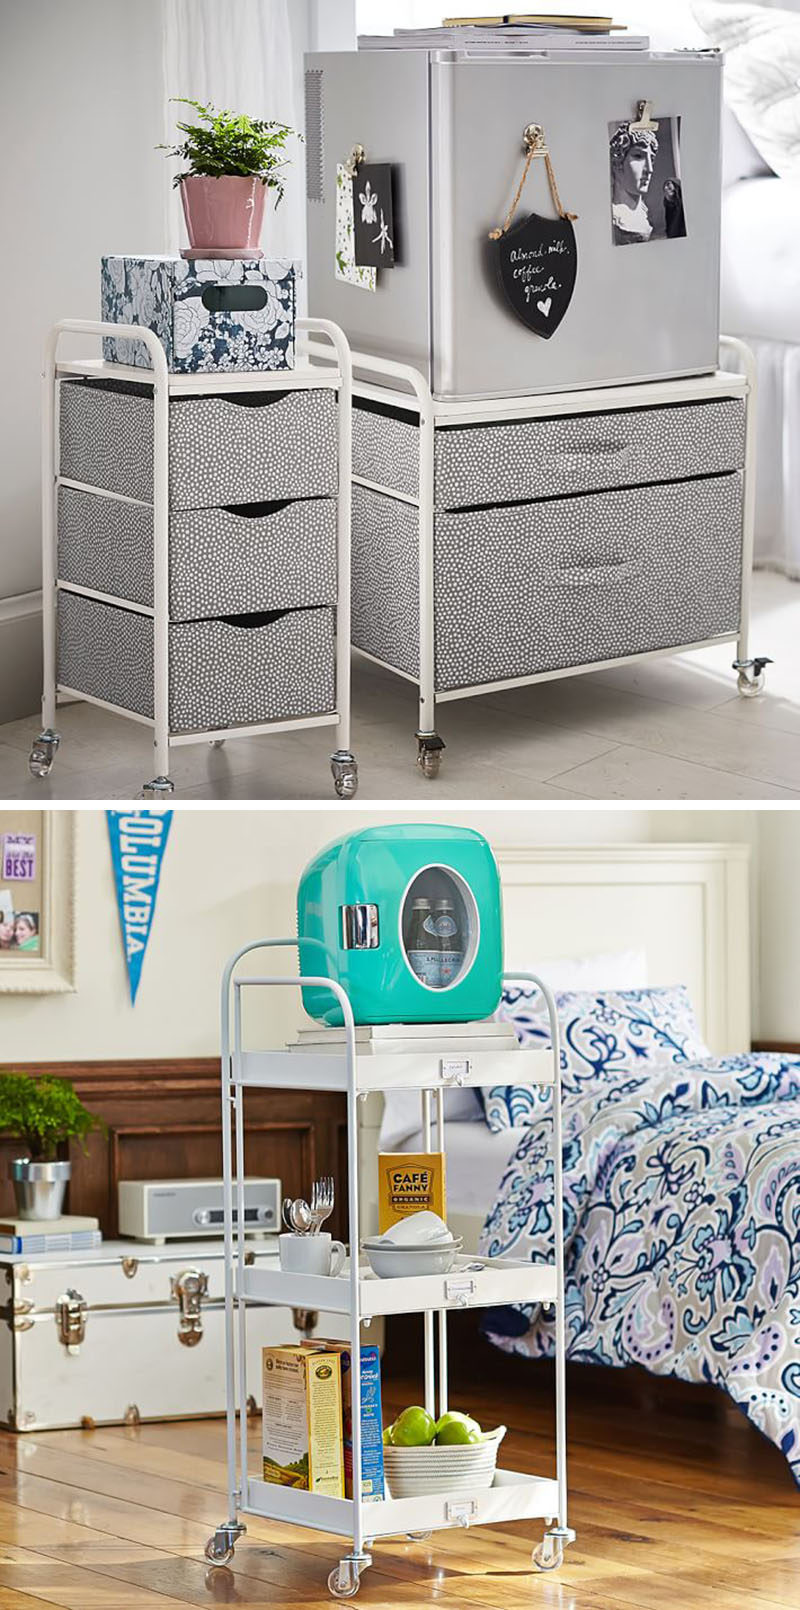 Dorm Room Design Ideas And Must Have Essentials A Mini Fridge Is A